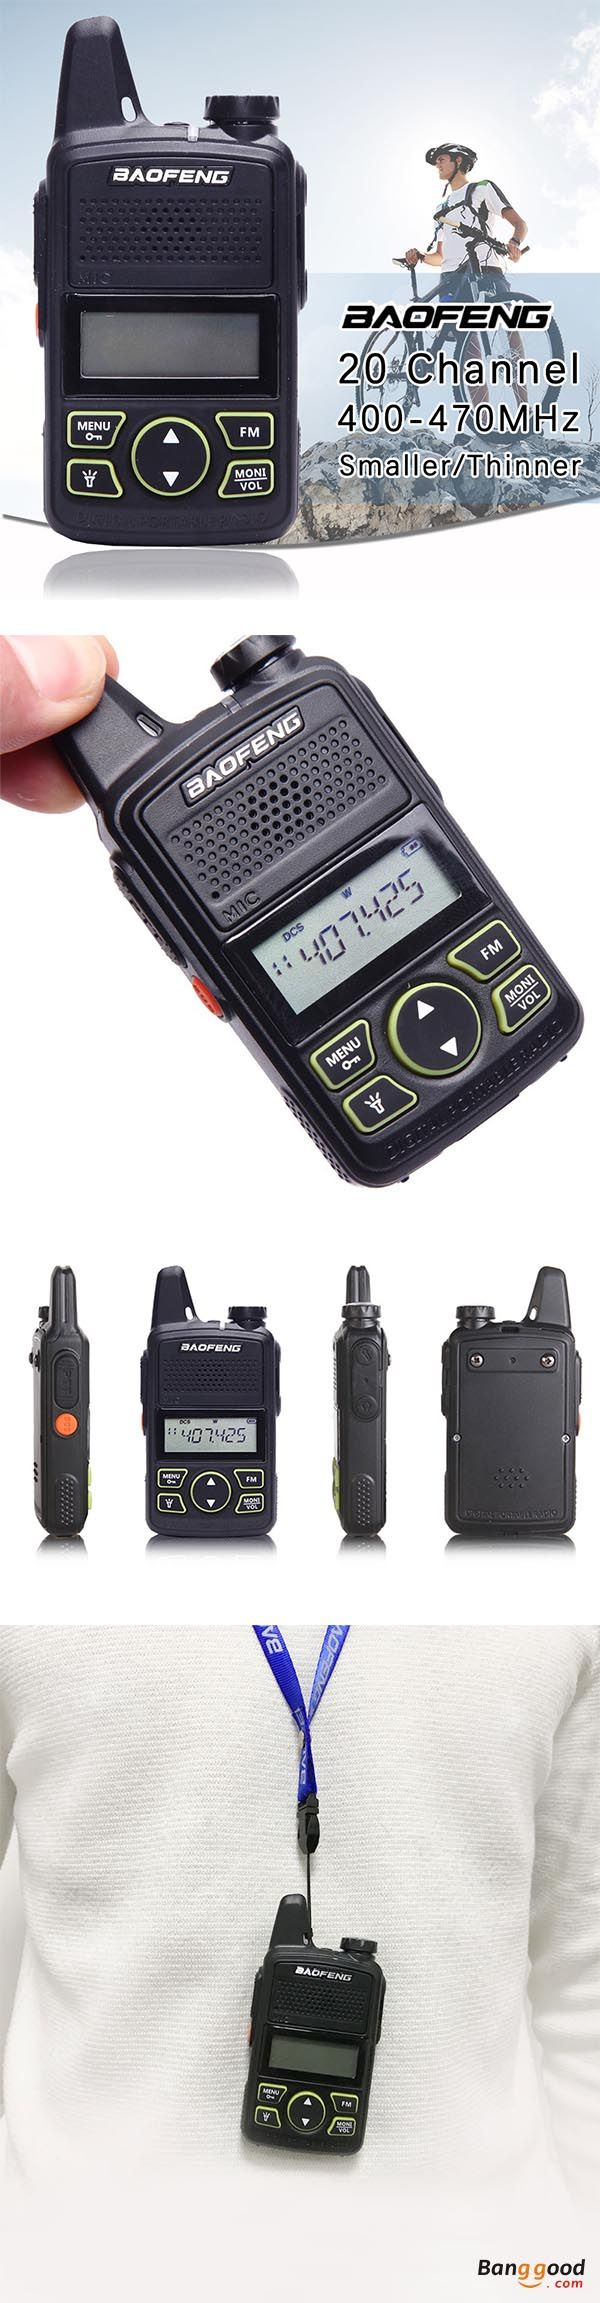 1049 Best Gadgets Images On Pinterest Product Design Products And Simple Intercom Using Tree Transistors Baofeng Bf T1 Frequency 400 470mhz 20 Channels Mini Ultra Thin Driving Hotel Civilian Walkie Talkie